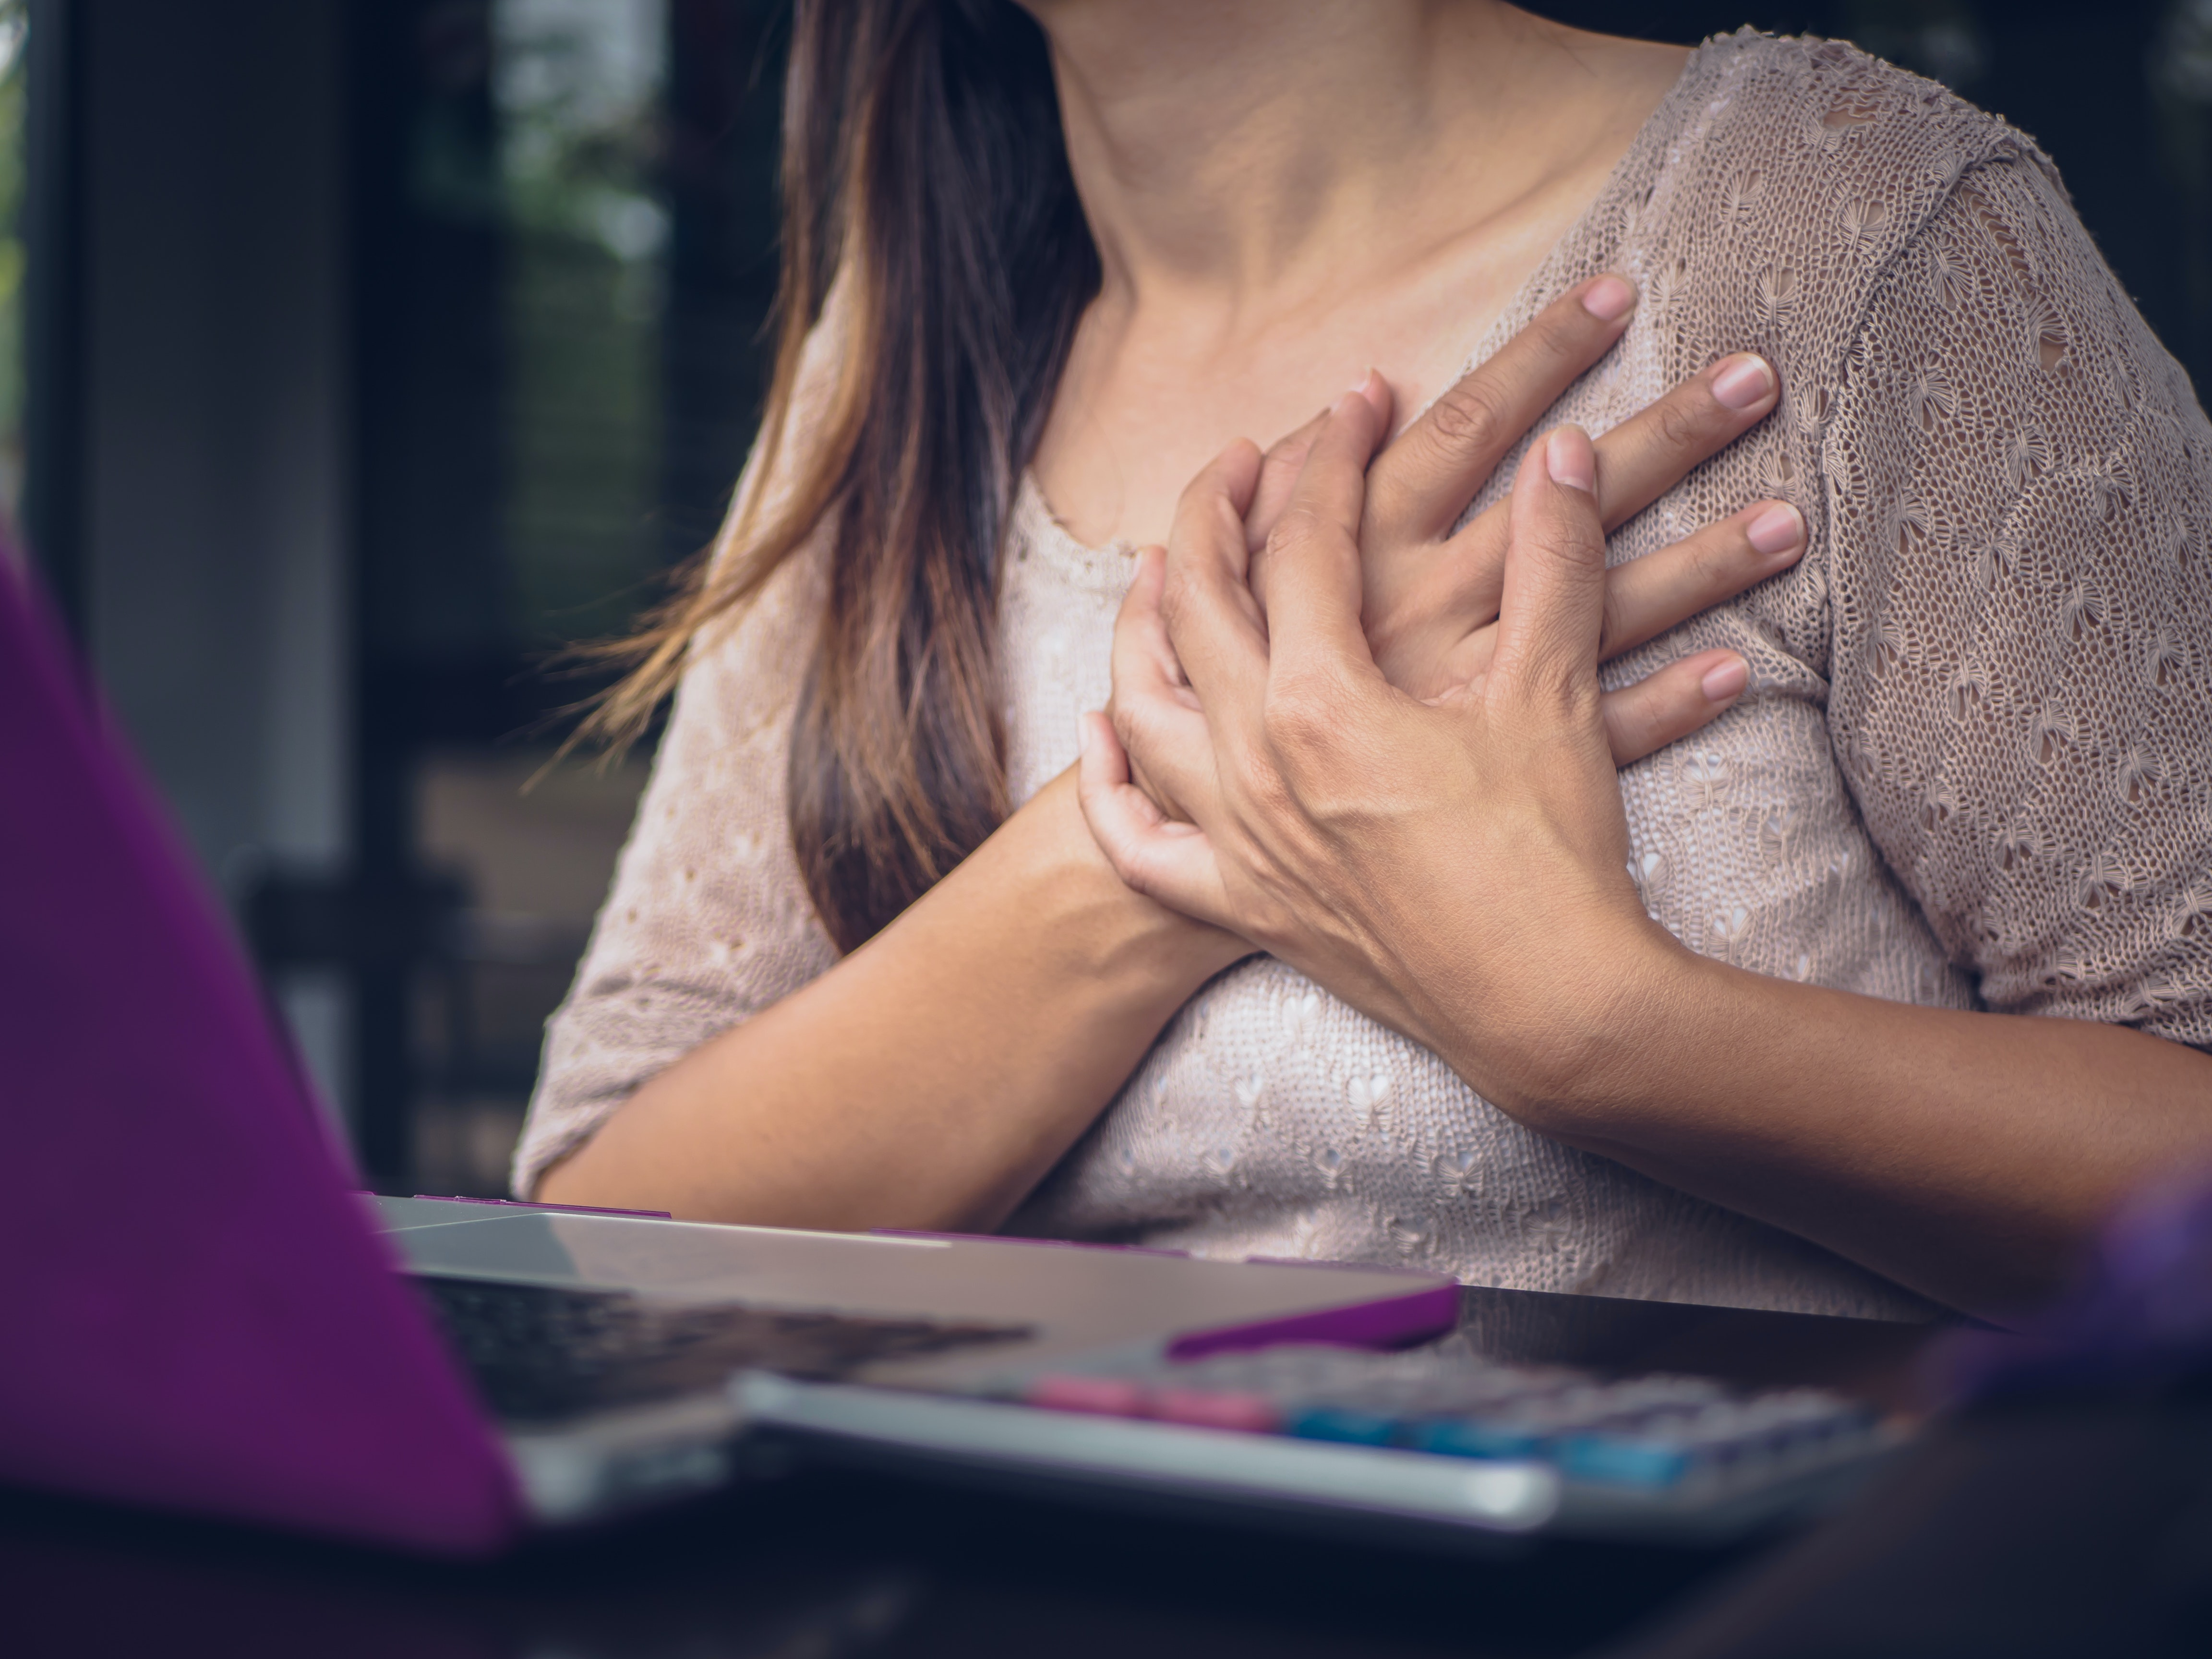 An image depicting a person suffering from chest pain symptoms